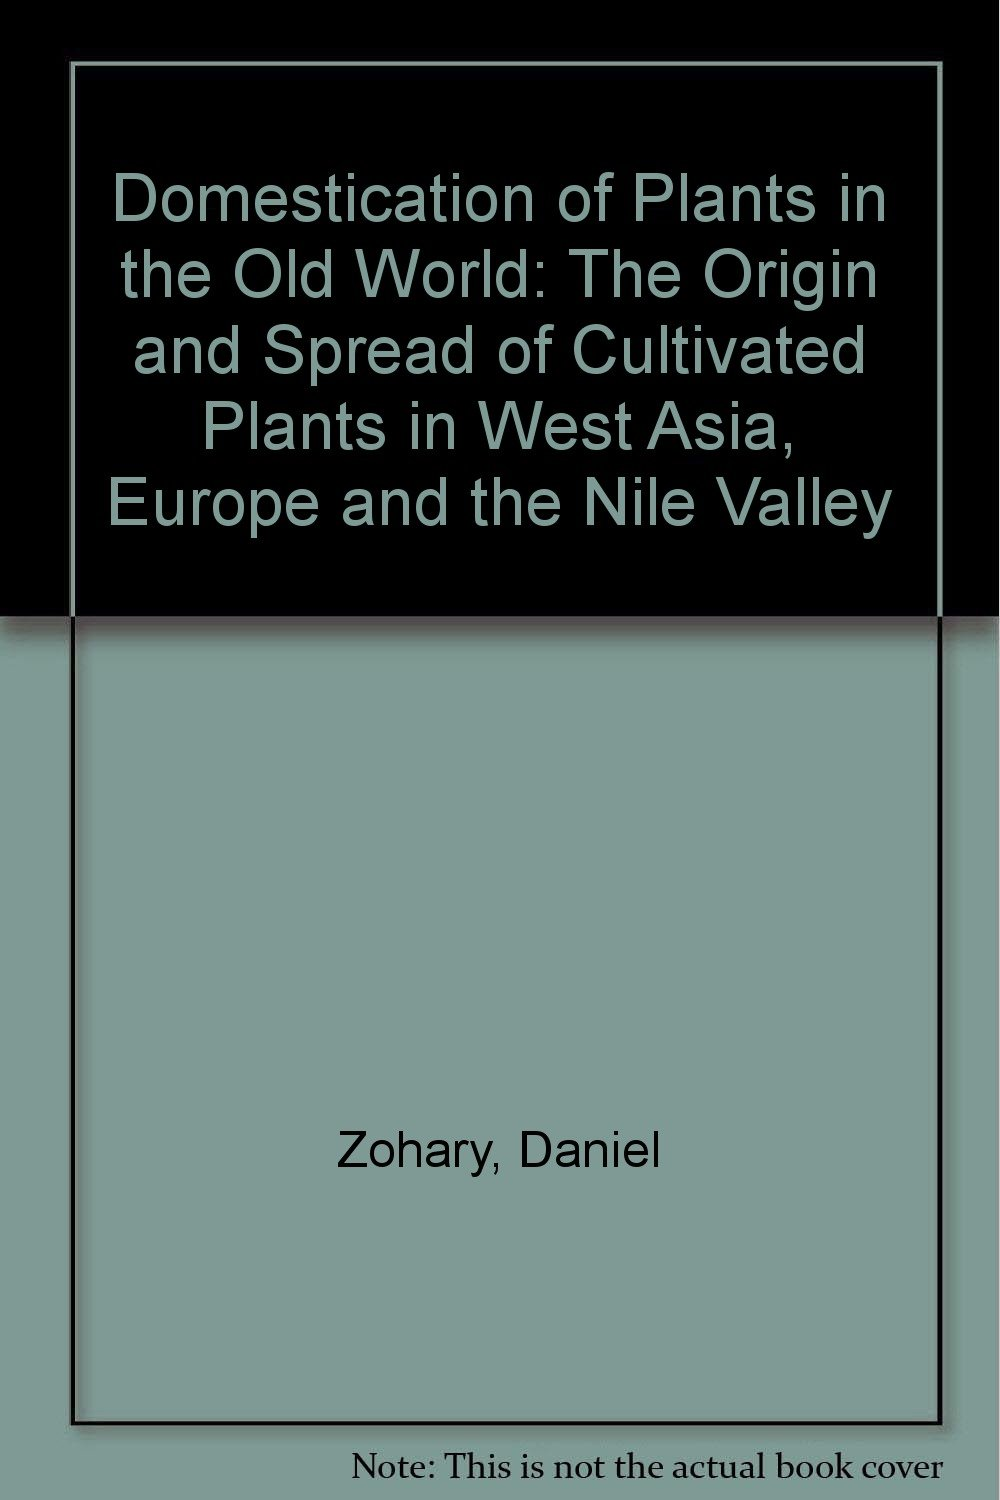 Domestication of Plants in the Old World: The Origin and Spread of Cultivated  Plants in West Asia, Europe, and the Nile Valley: Amazon.ca: Daniel Zohary,  ...